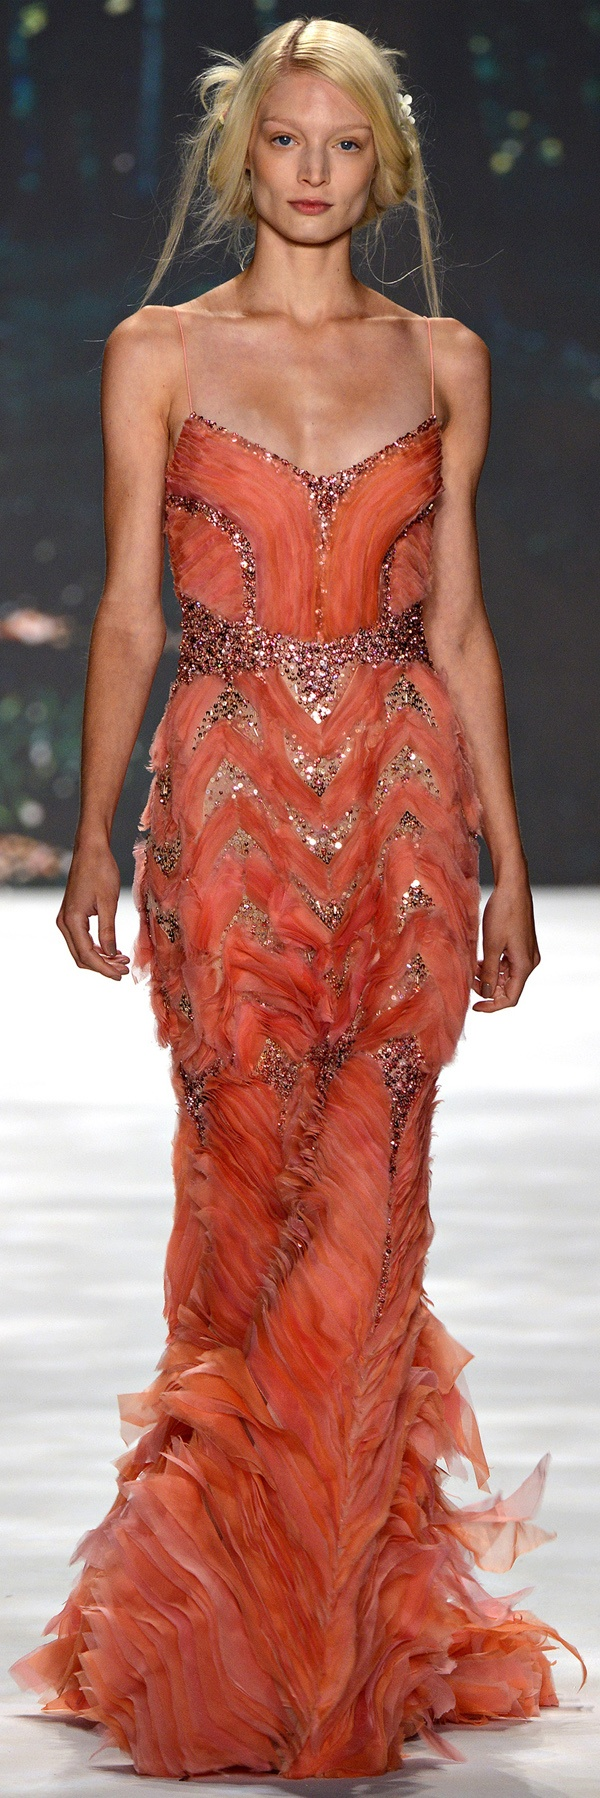 #Badgley Mischka Spring Summer 2013 Ready-To-Wear collection